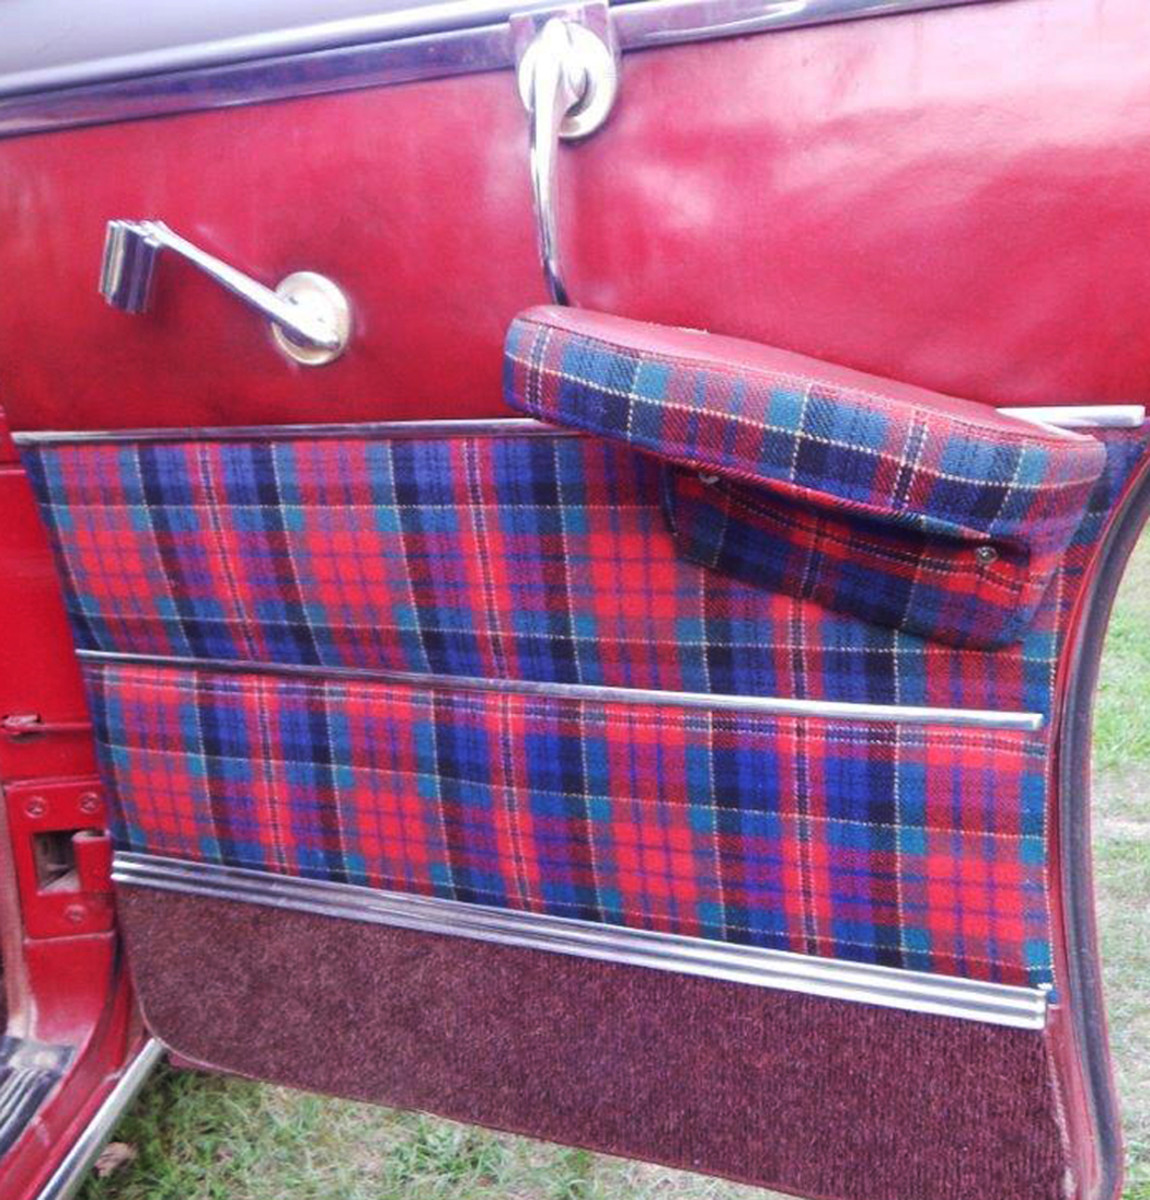 The blue and red plaid motif made its way to the doors.